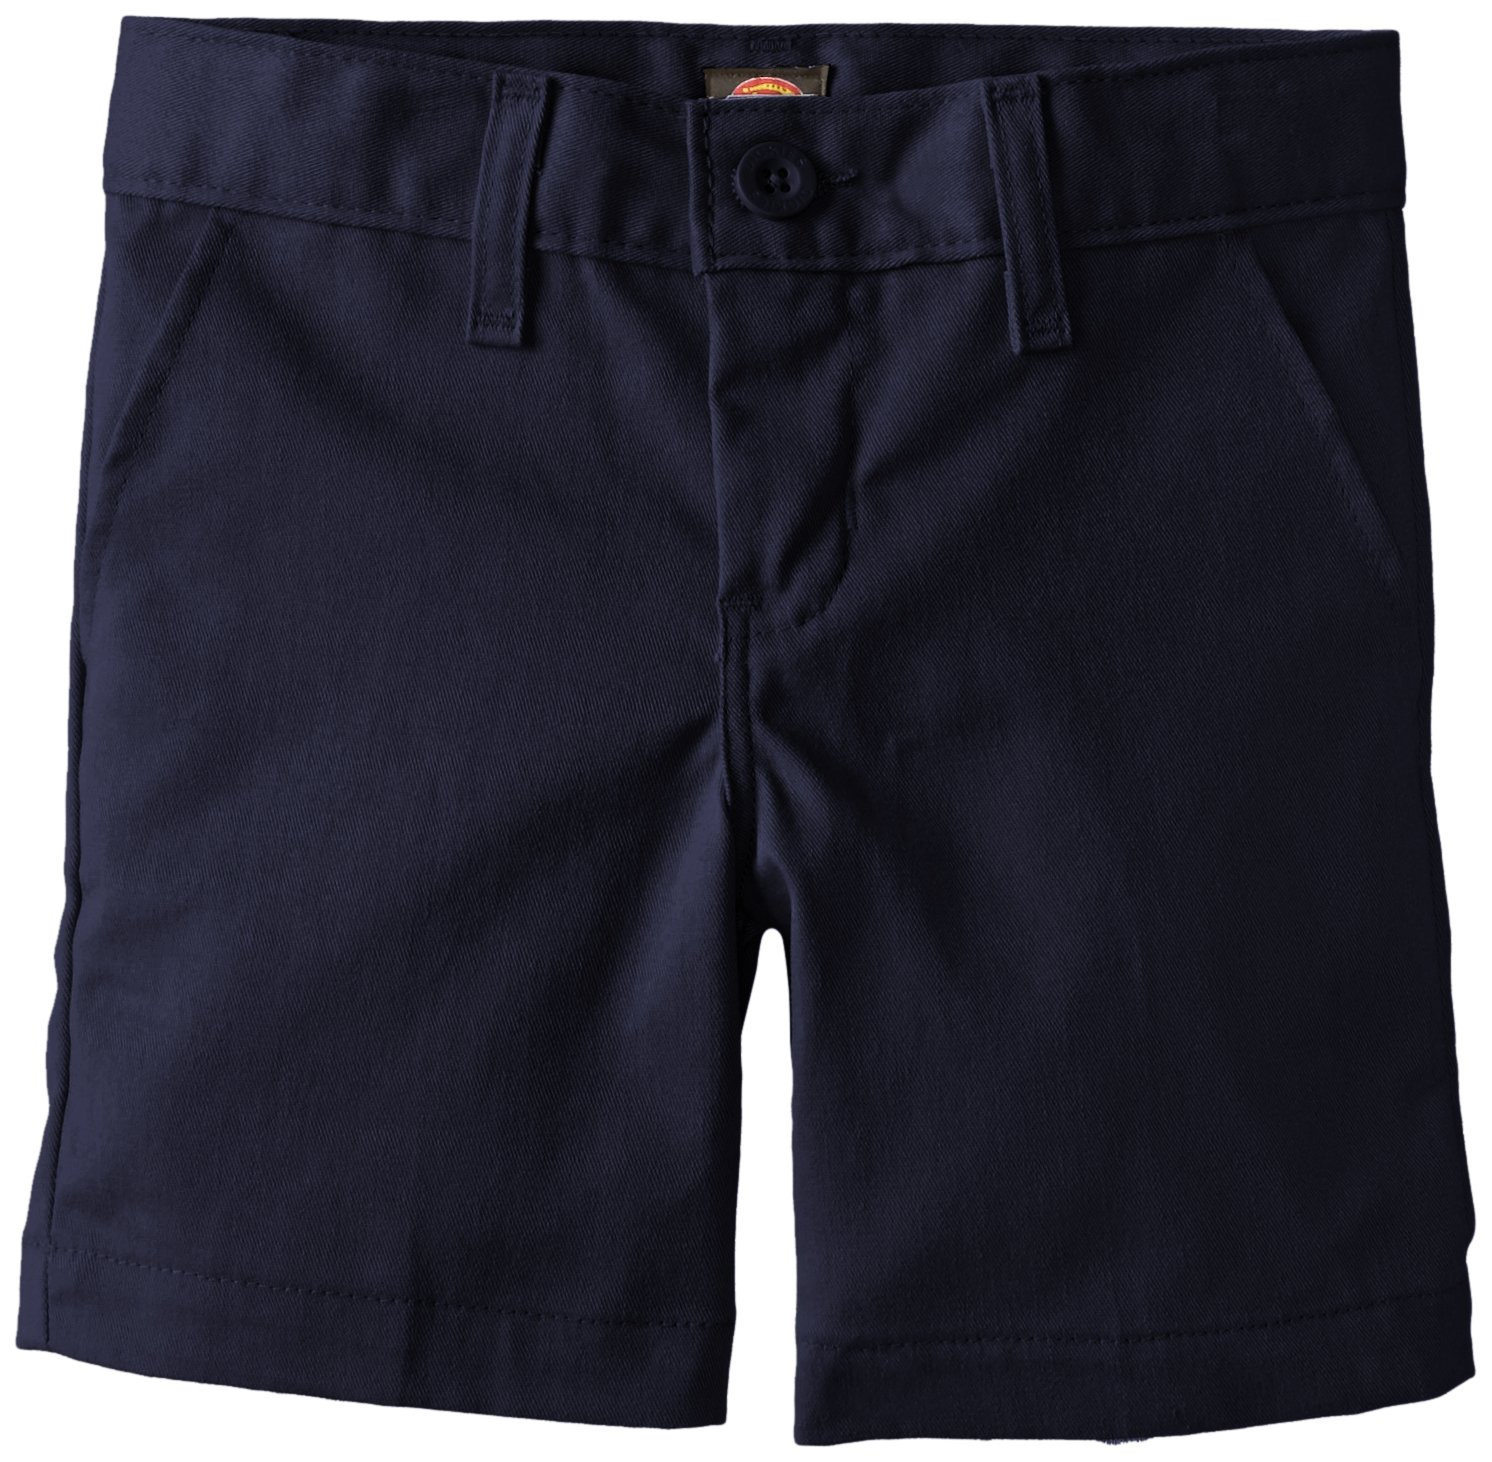 Dickies Khaki Boys' Flex Waist Stretch Flat Front Short Dickies Boys 8-20 KR0700